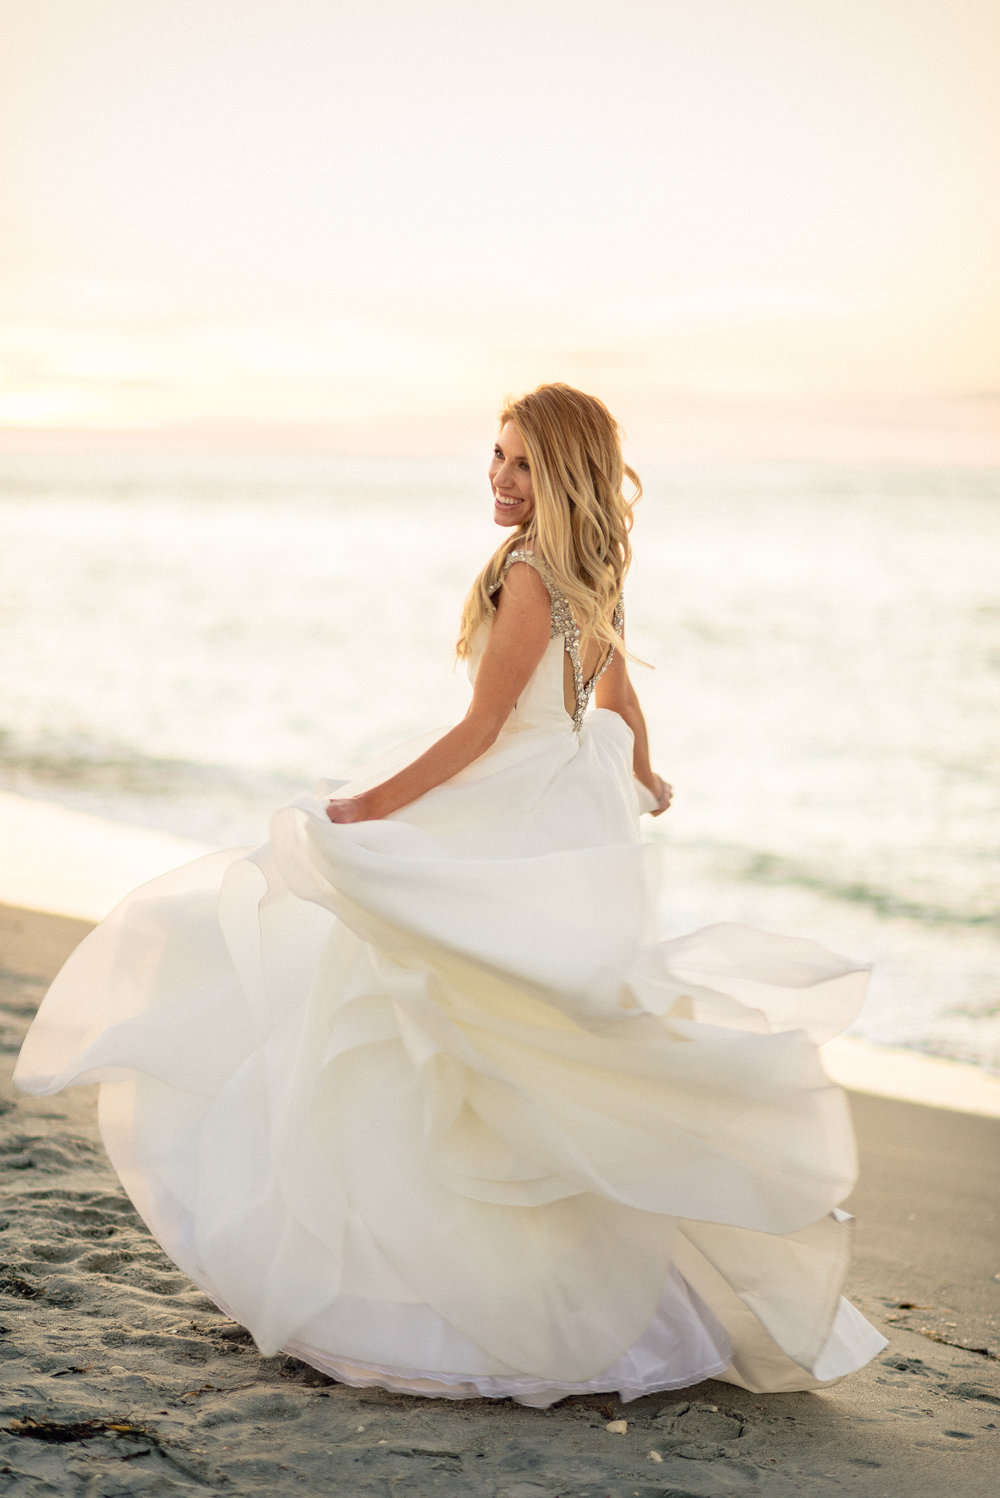 Beach bride photography.jpg